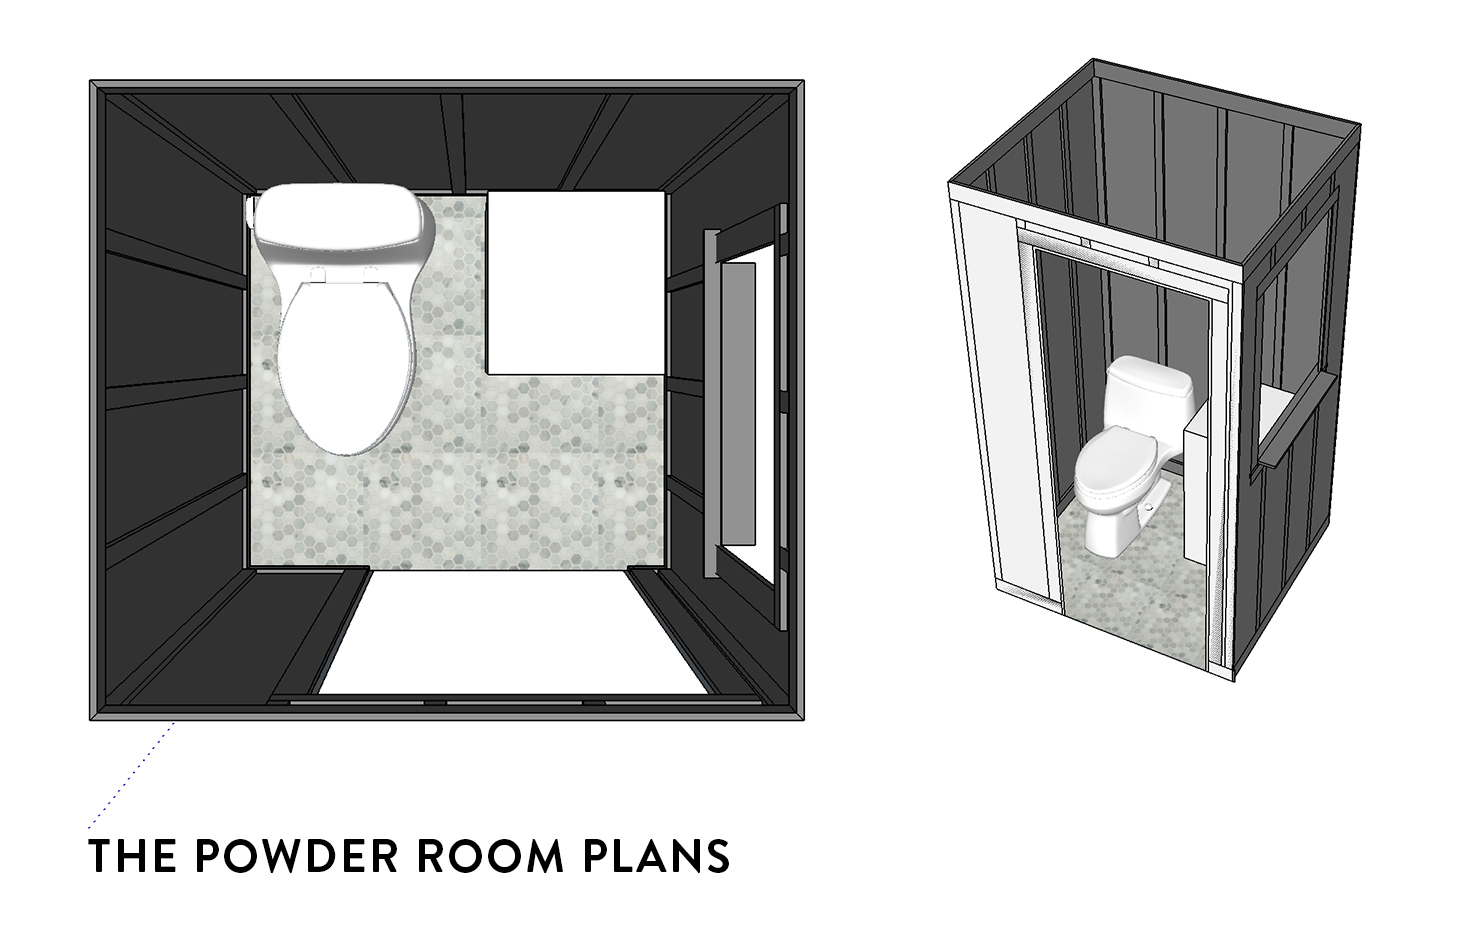 Powder Room Sketchup Plans | The Sweet Beast Blog